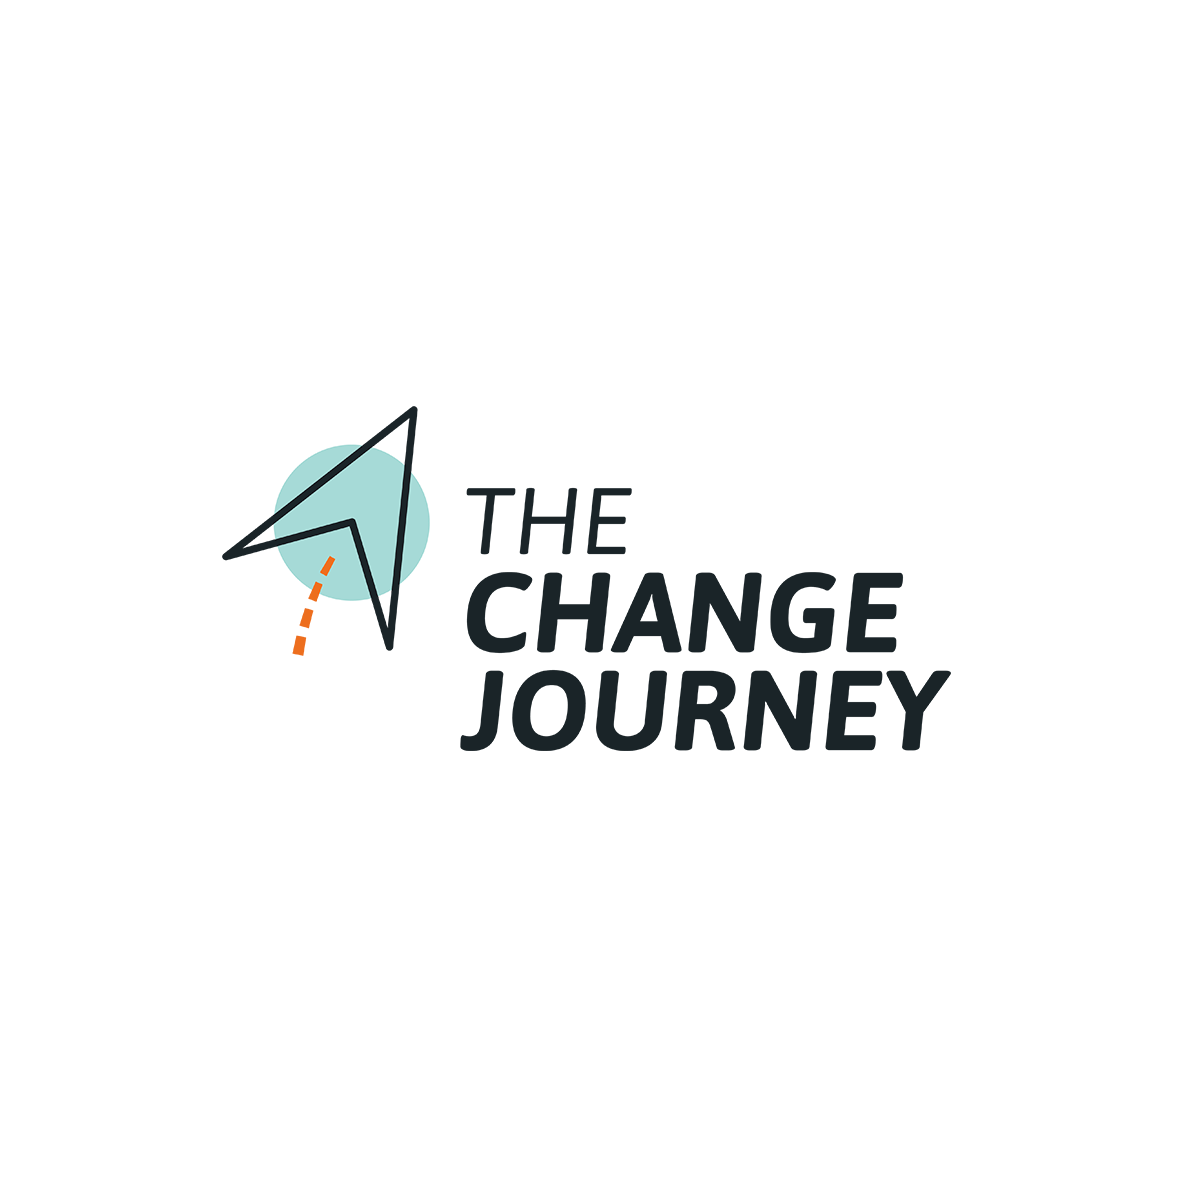 Logo Design The Change Journey